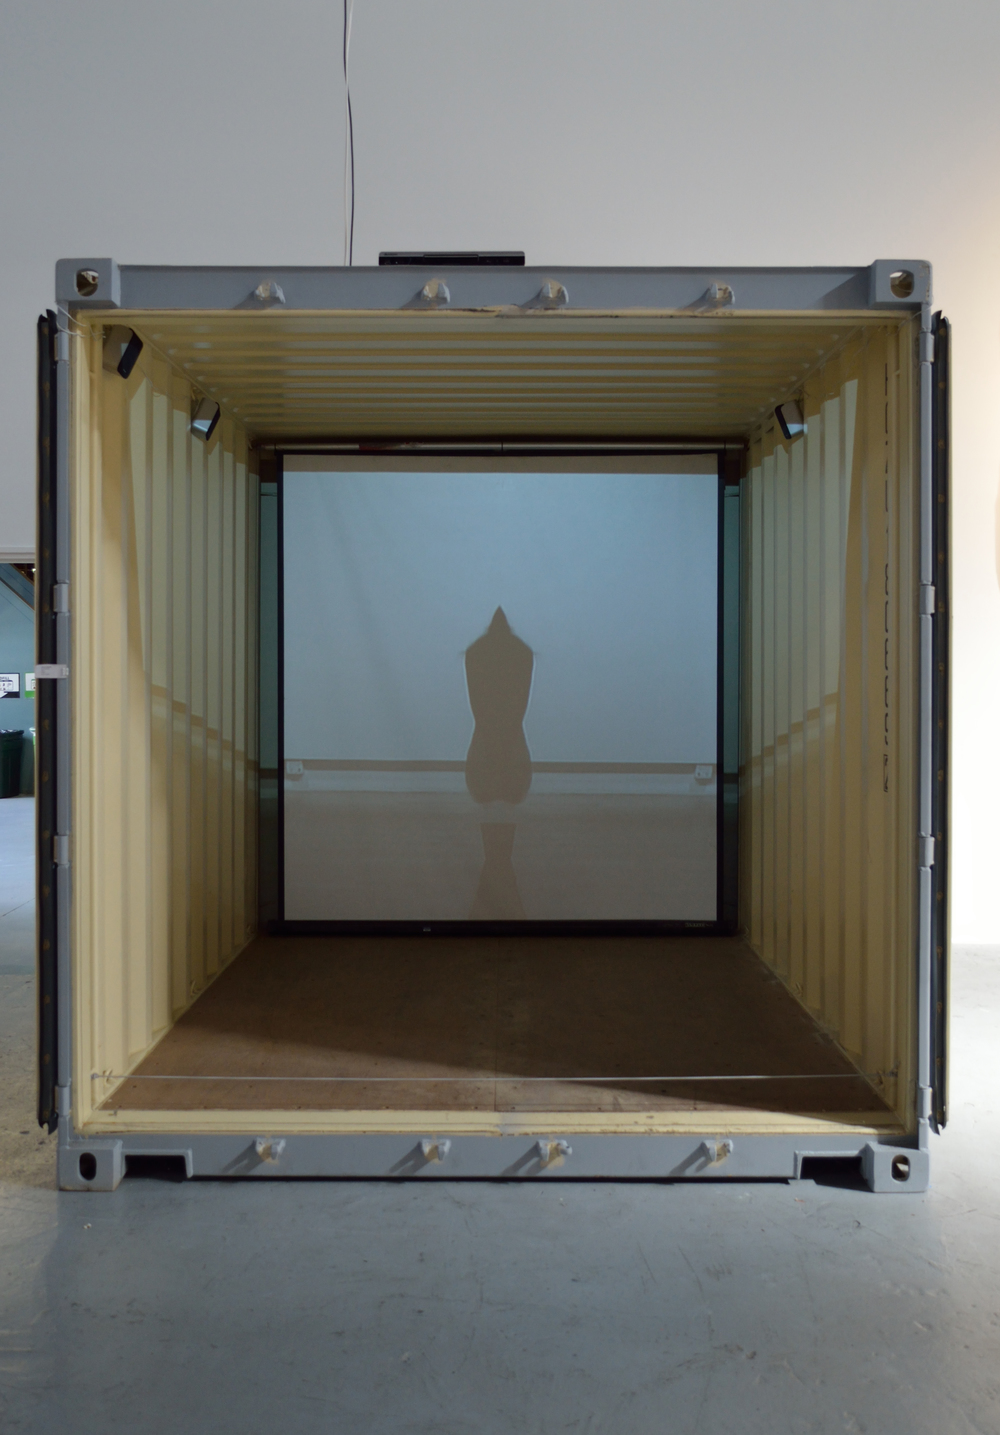 Bonaventure, 2010, video installation in shipping container, 2013 Electronic Pacific, SOMArts